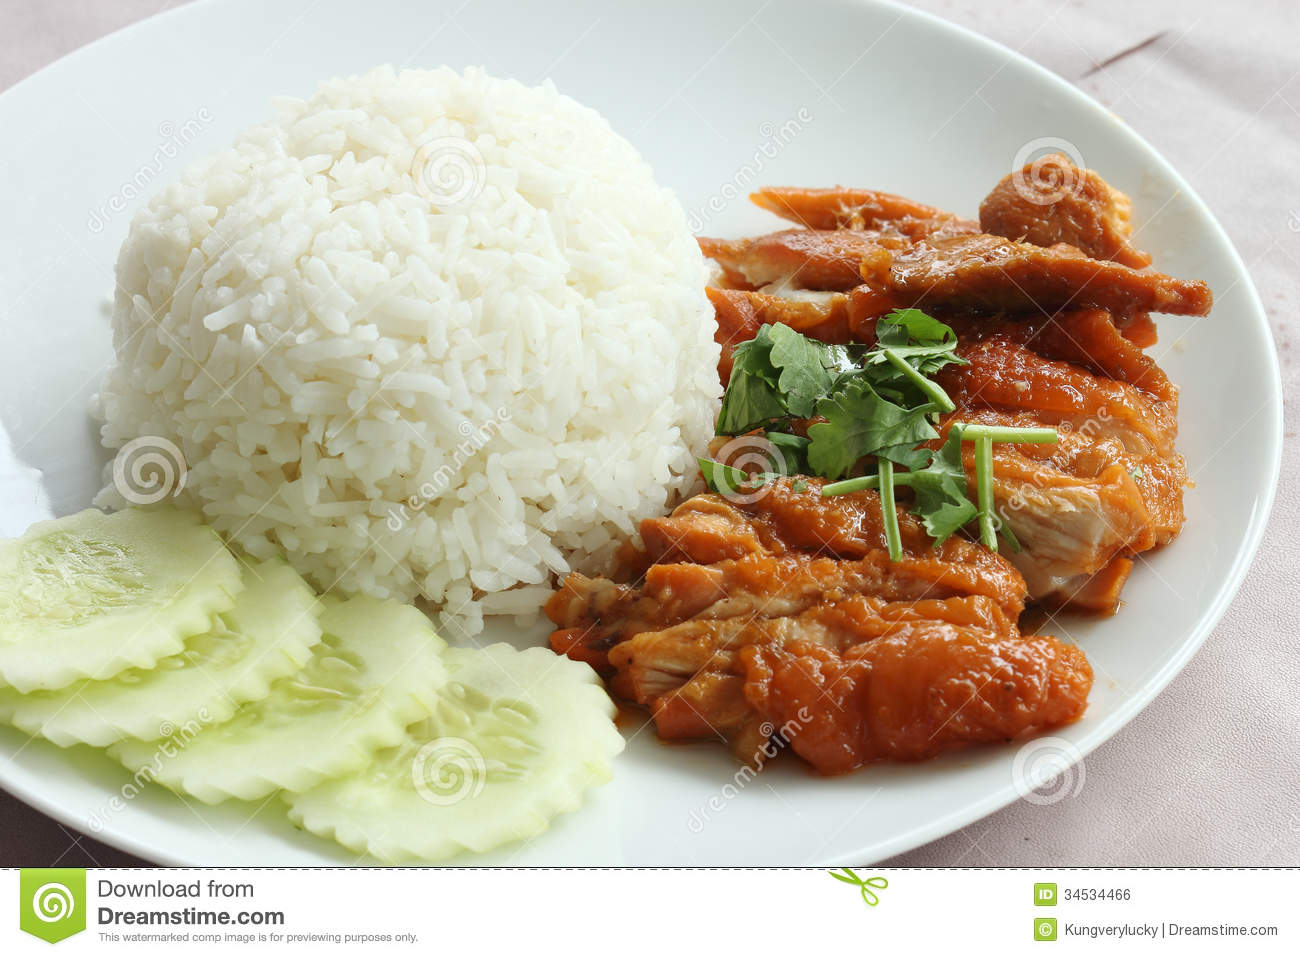 Roast Chicken with rice in Chinese Style.